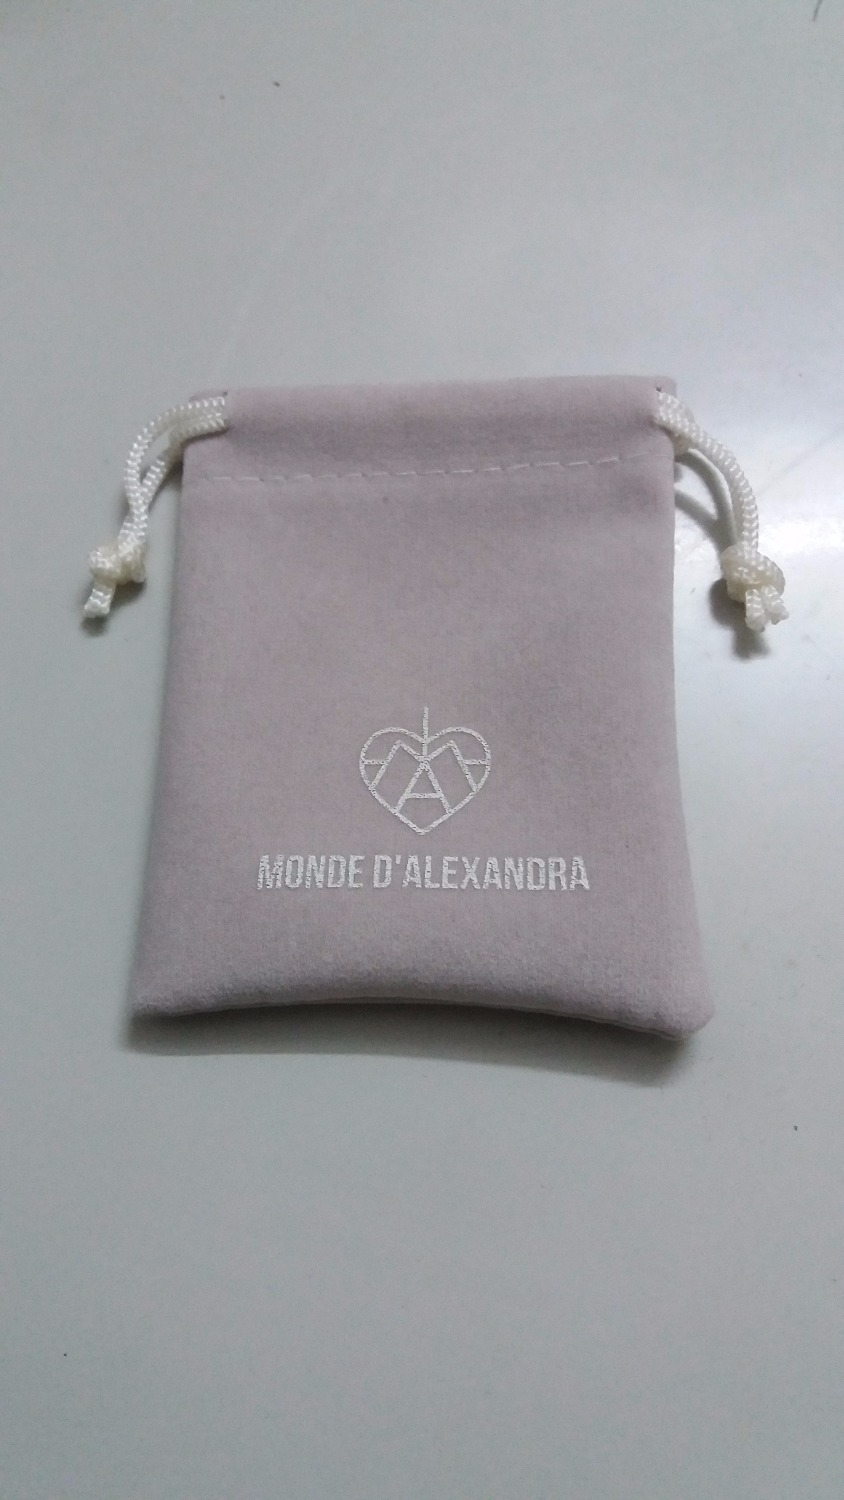 high quality drawstring bag 500pcs/lot grey velvet bag size 7*9cm with custom silver logo and free shipping by DHL jewelry bag